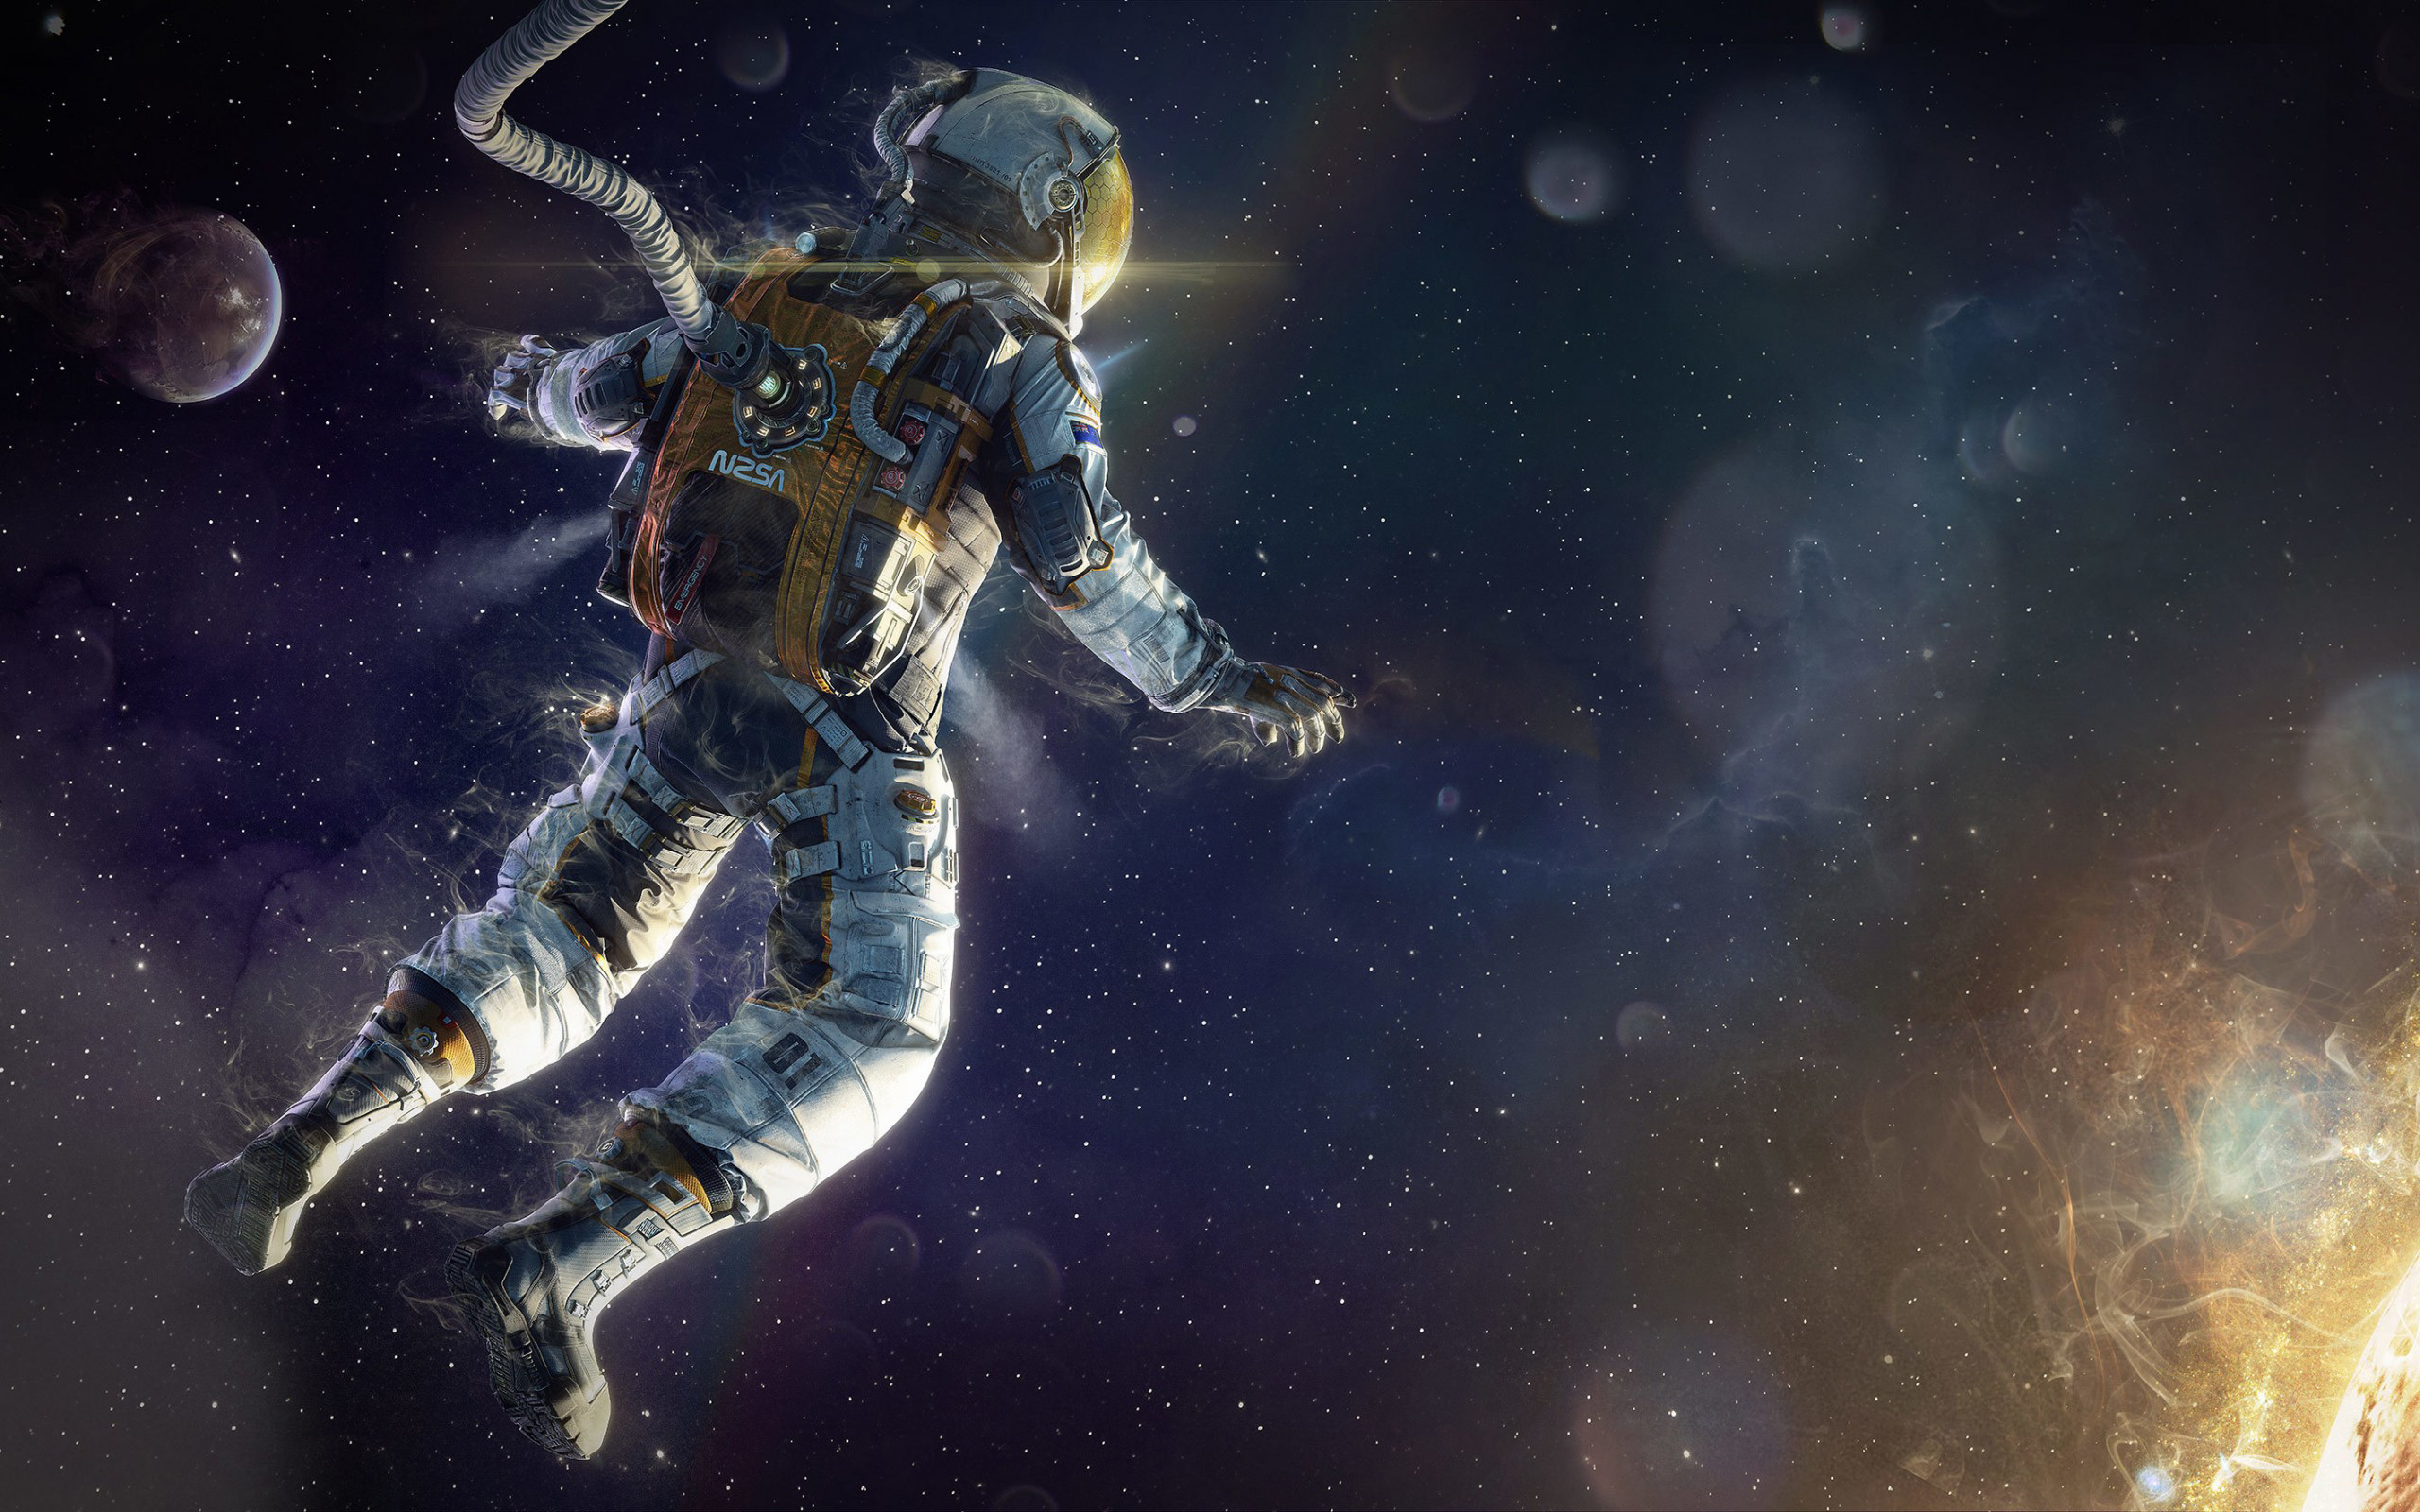 HD Astronaut Wallpaper 70 images 2560x1600